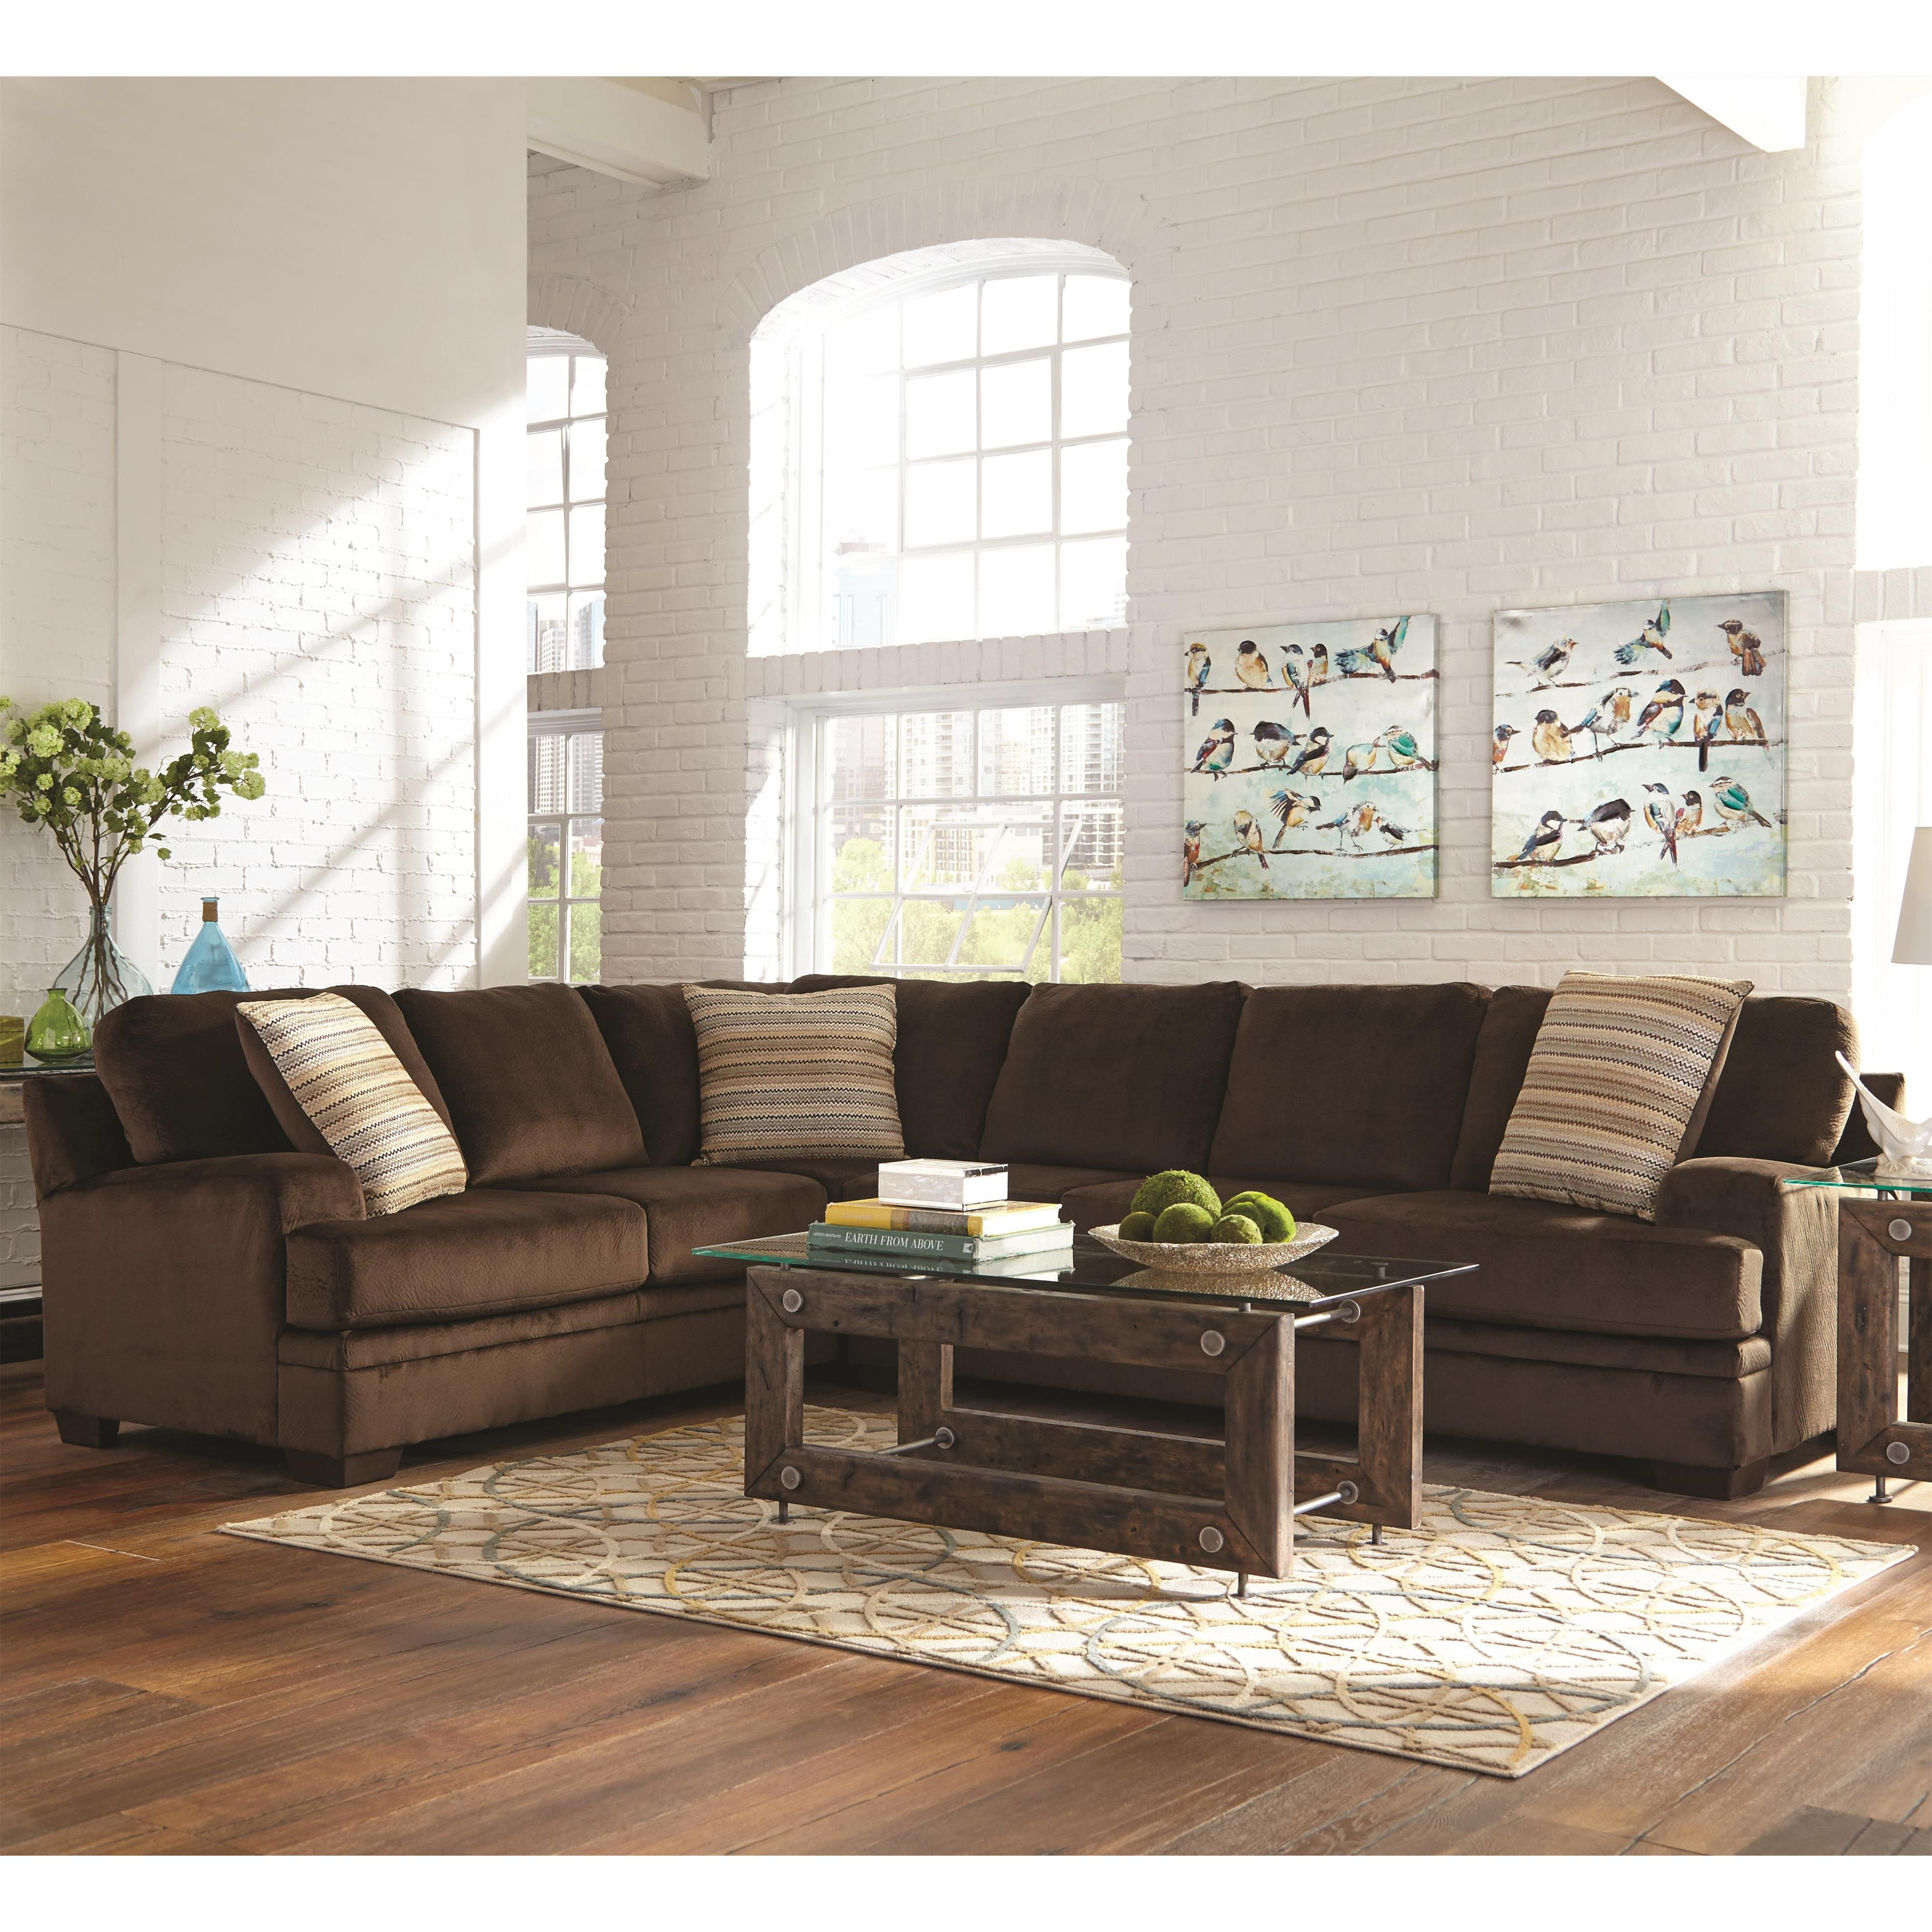 Coaster Robion Sectional - Item Number: 501147